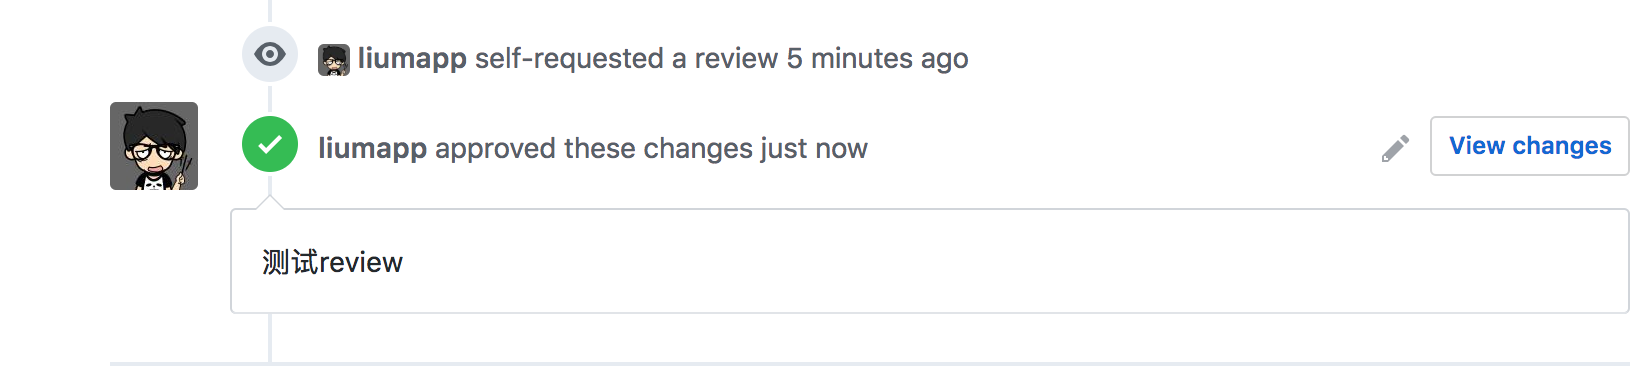 review_result.png